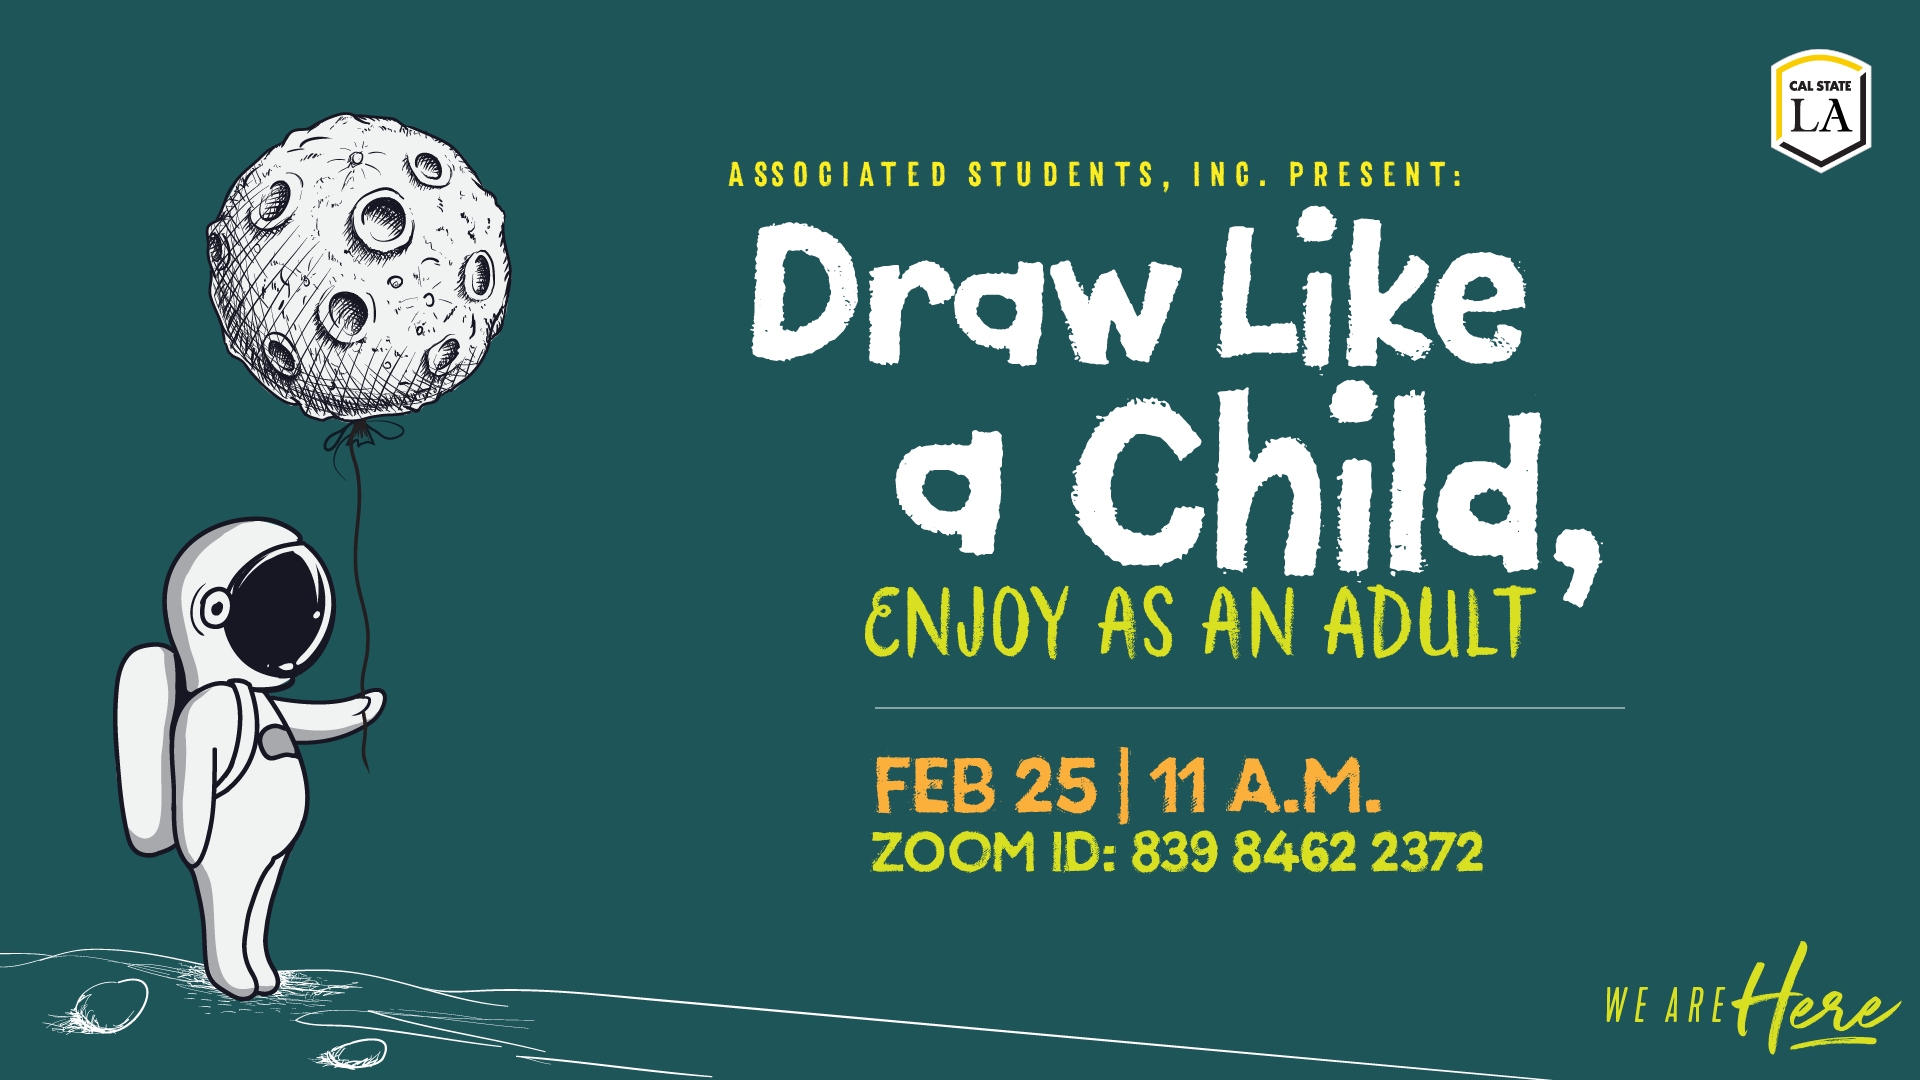 Draw Like a Child, Enjoy as an Adult